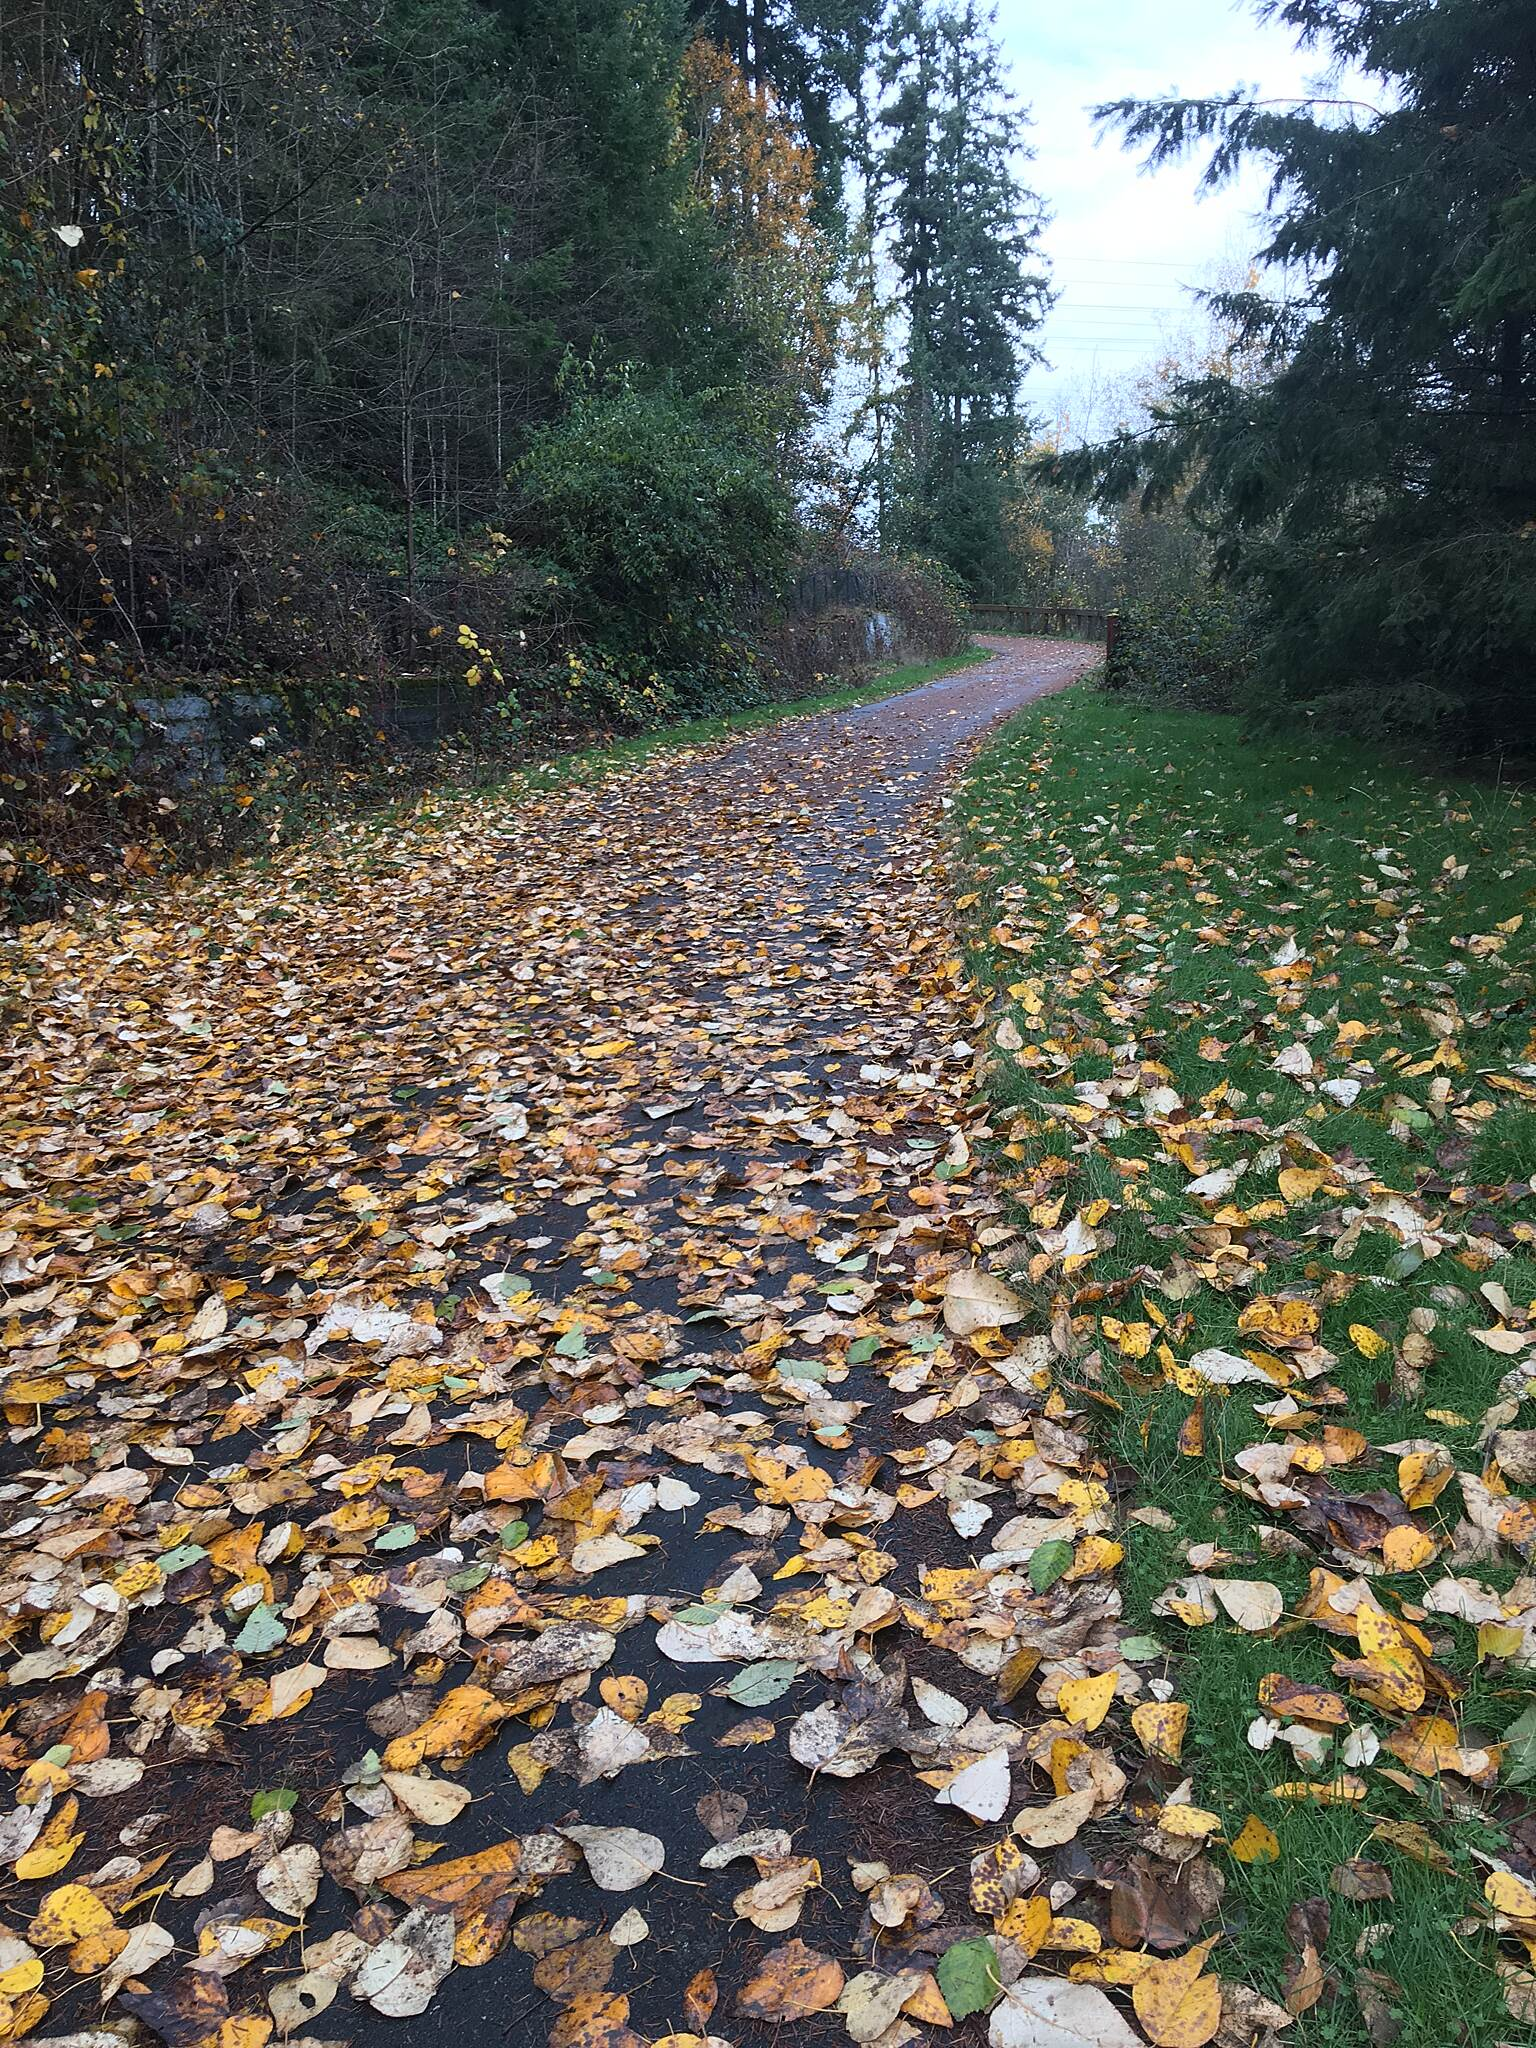 BPA Trail BPA Trail Federal Way at the base of the big hill at 348th across from the Aquatic Center. Fall 2017